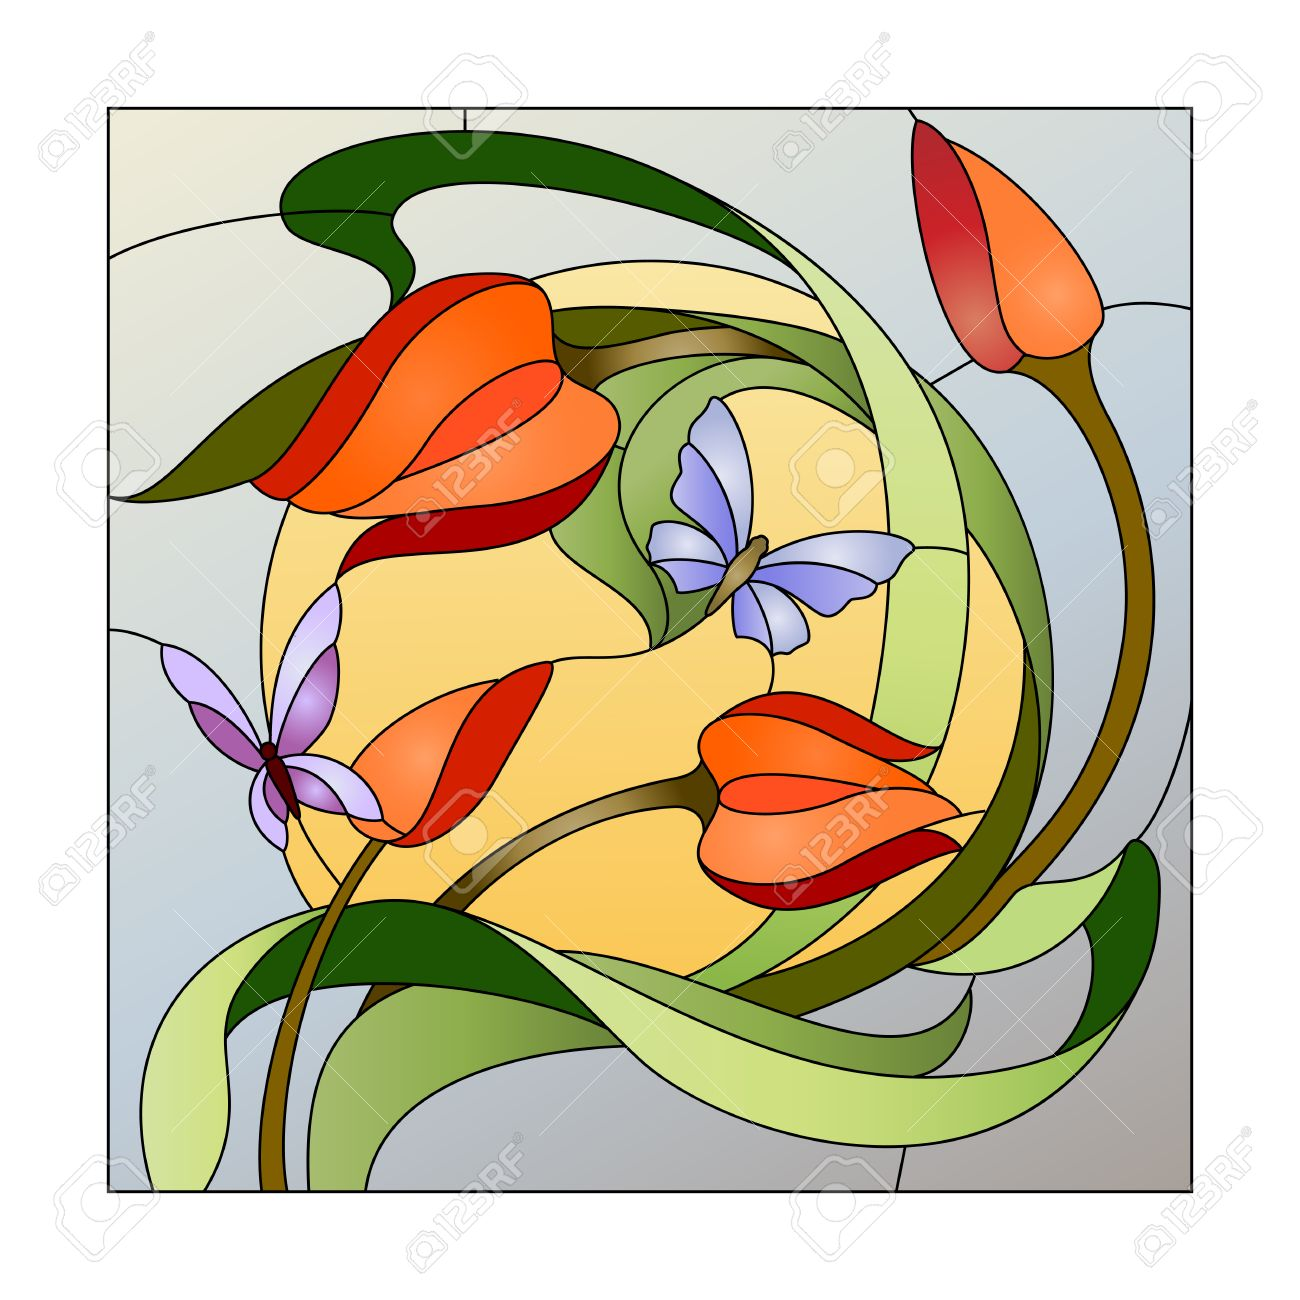 Stained glass pattern with red flowers and butterflies - 57088998